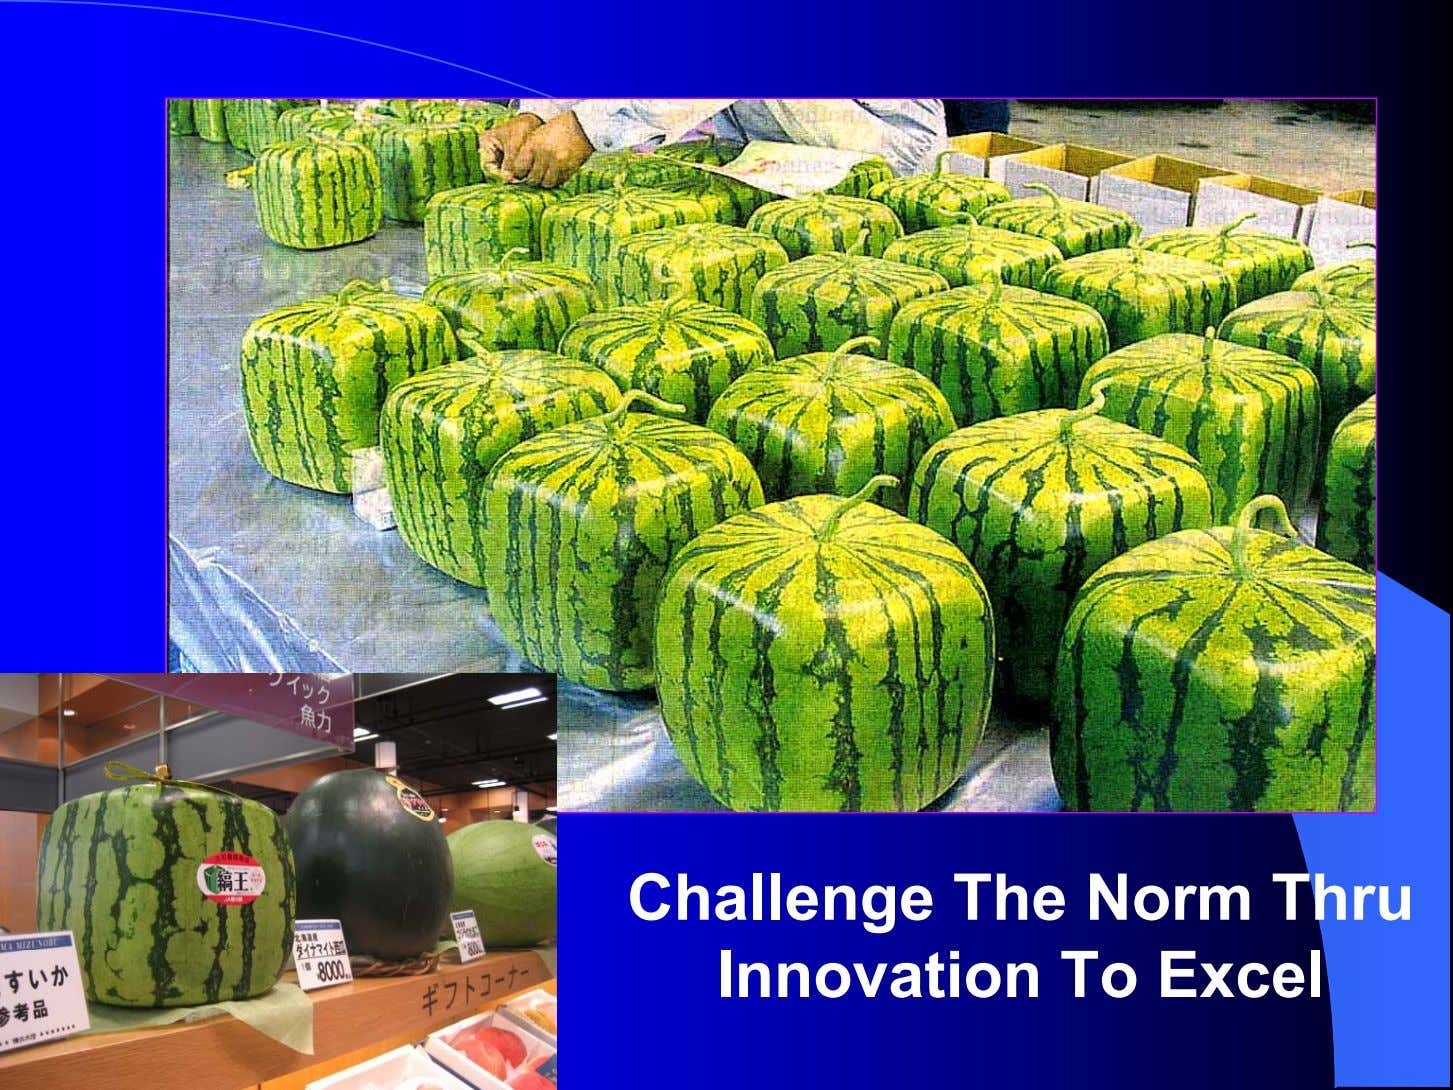 Challenge The Norm Thru Innovation To Excel